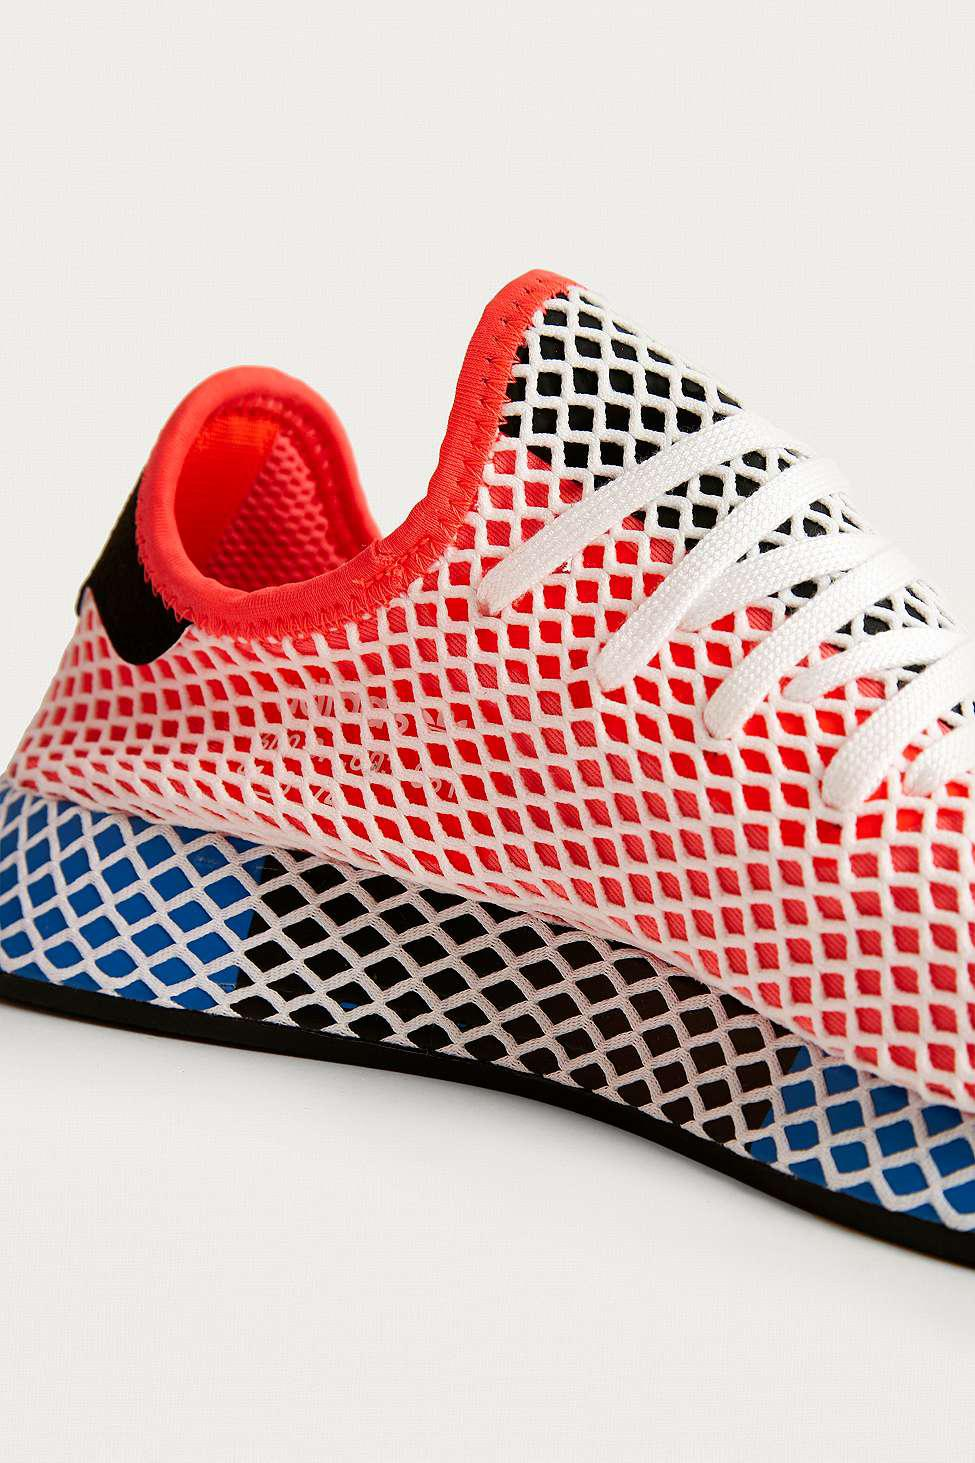 d0230b990be45 adidas Originals Deerupt Red Running Trainers - Womens Uk 8 in Red ...